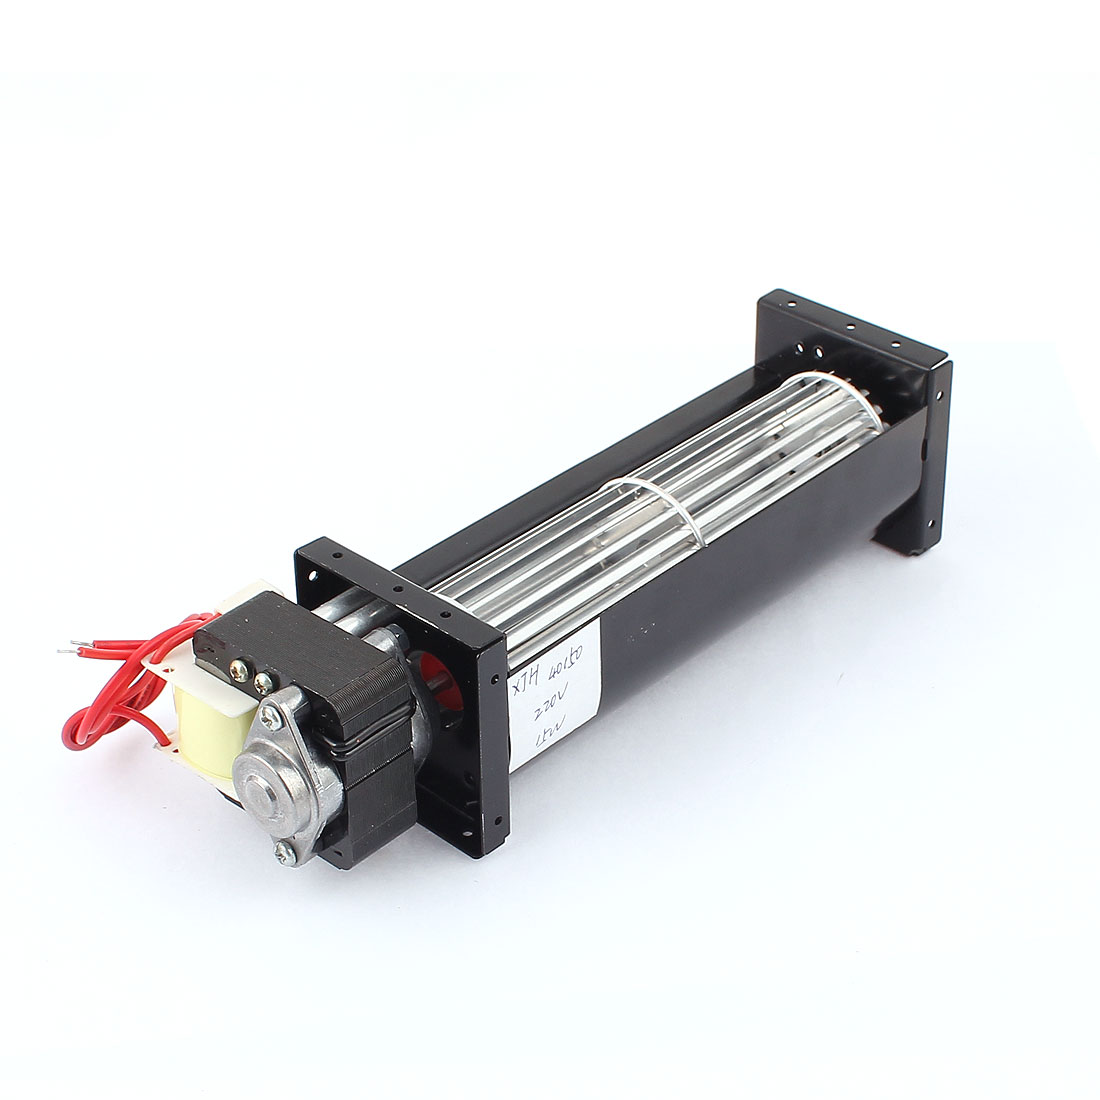 AC 220V 2600RPM Cross Flow Cooling Fan Heat Exchanger Amplifier Cooler